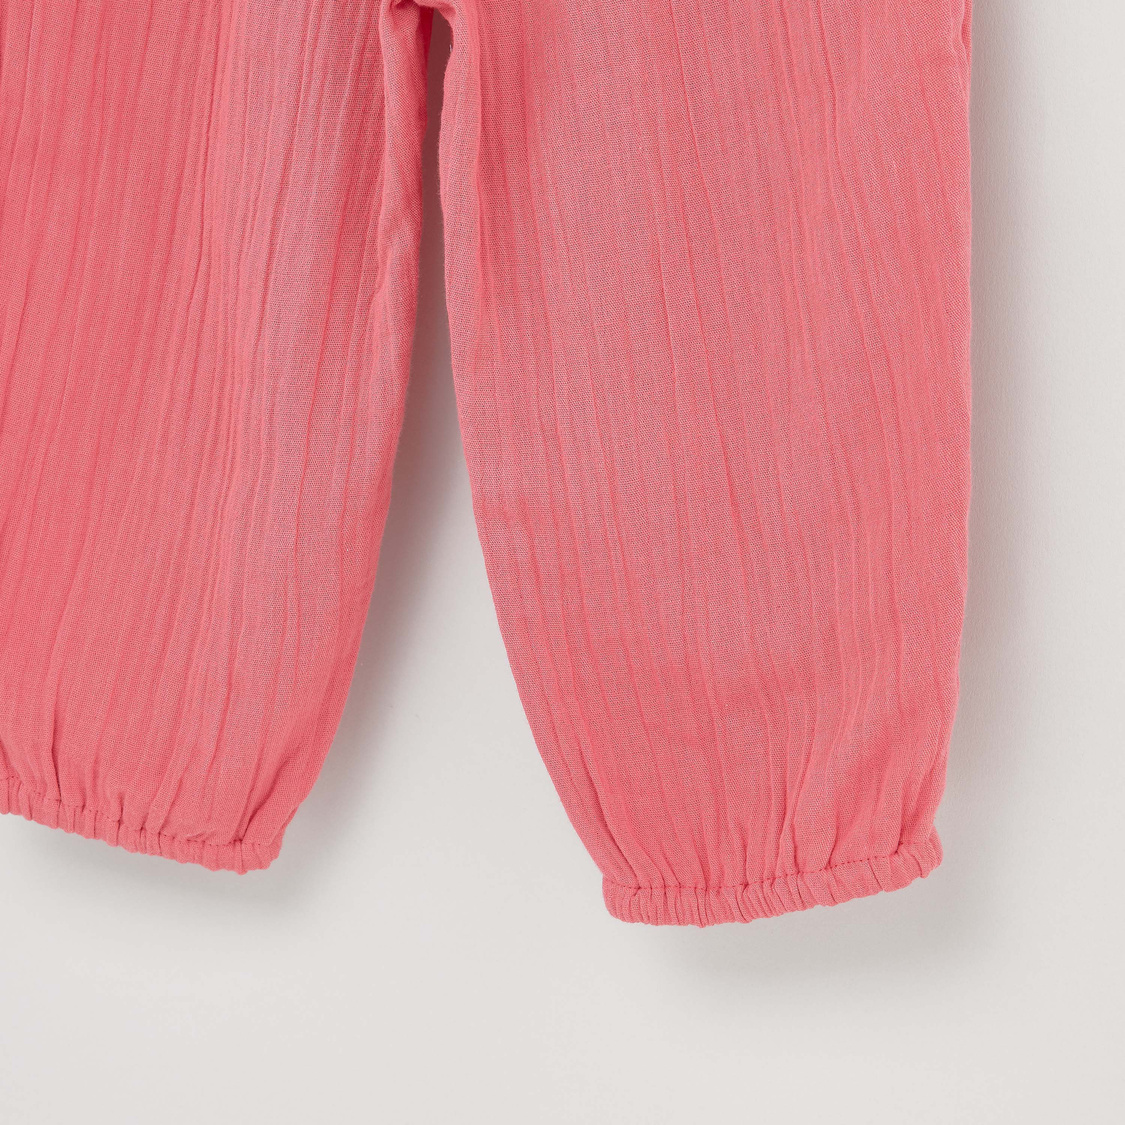 Textured Pants with Bow Applique and Pocket Detail